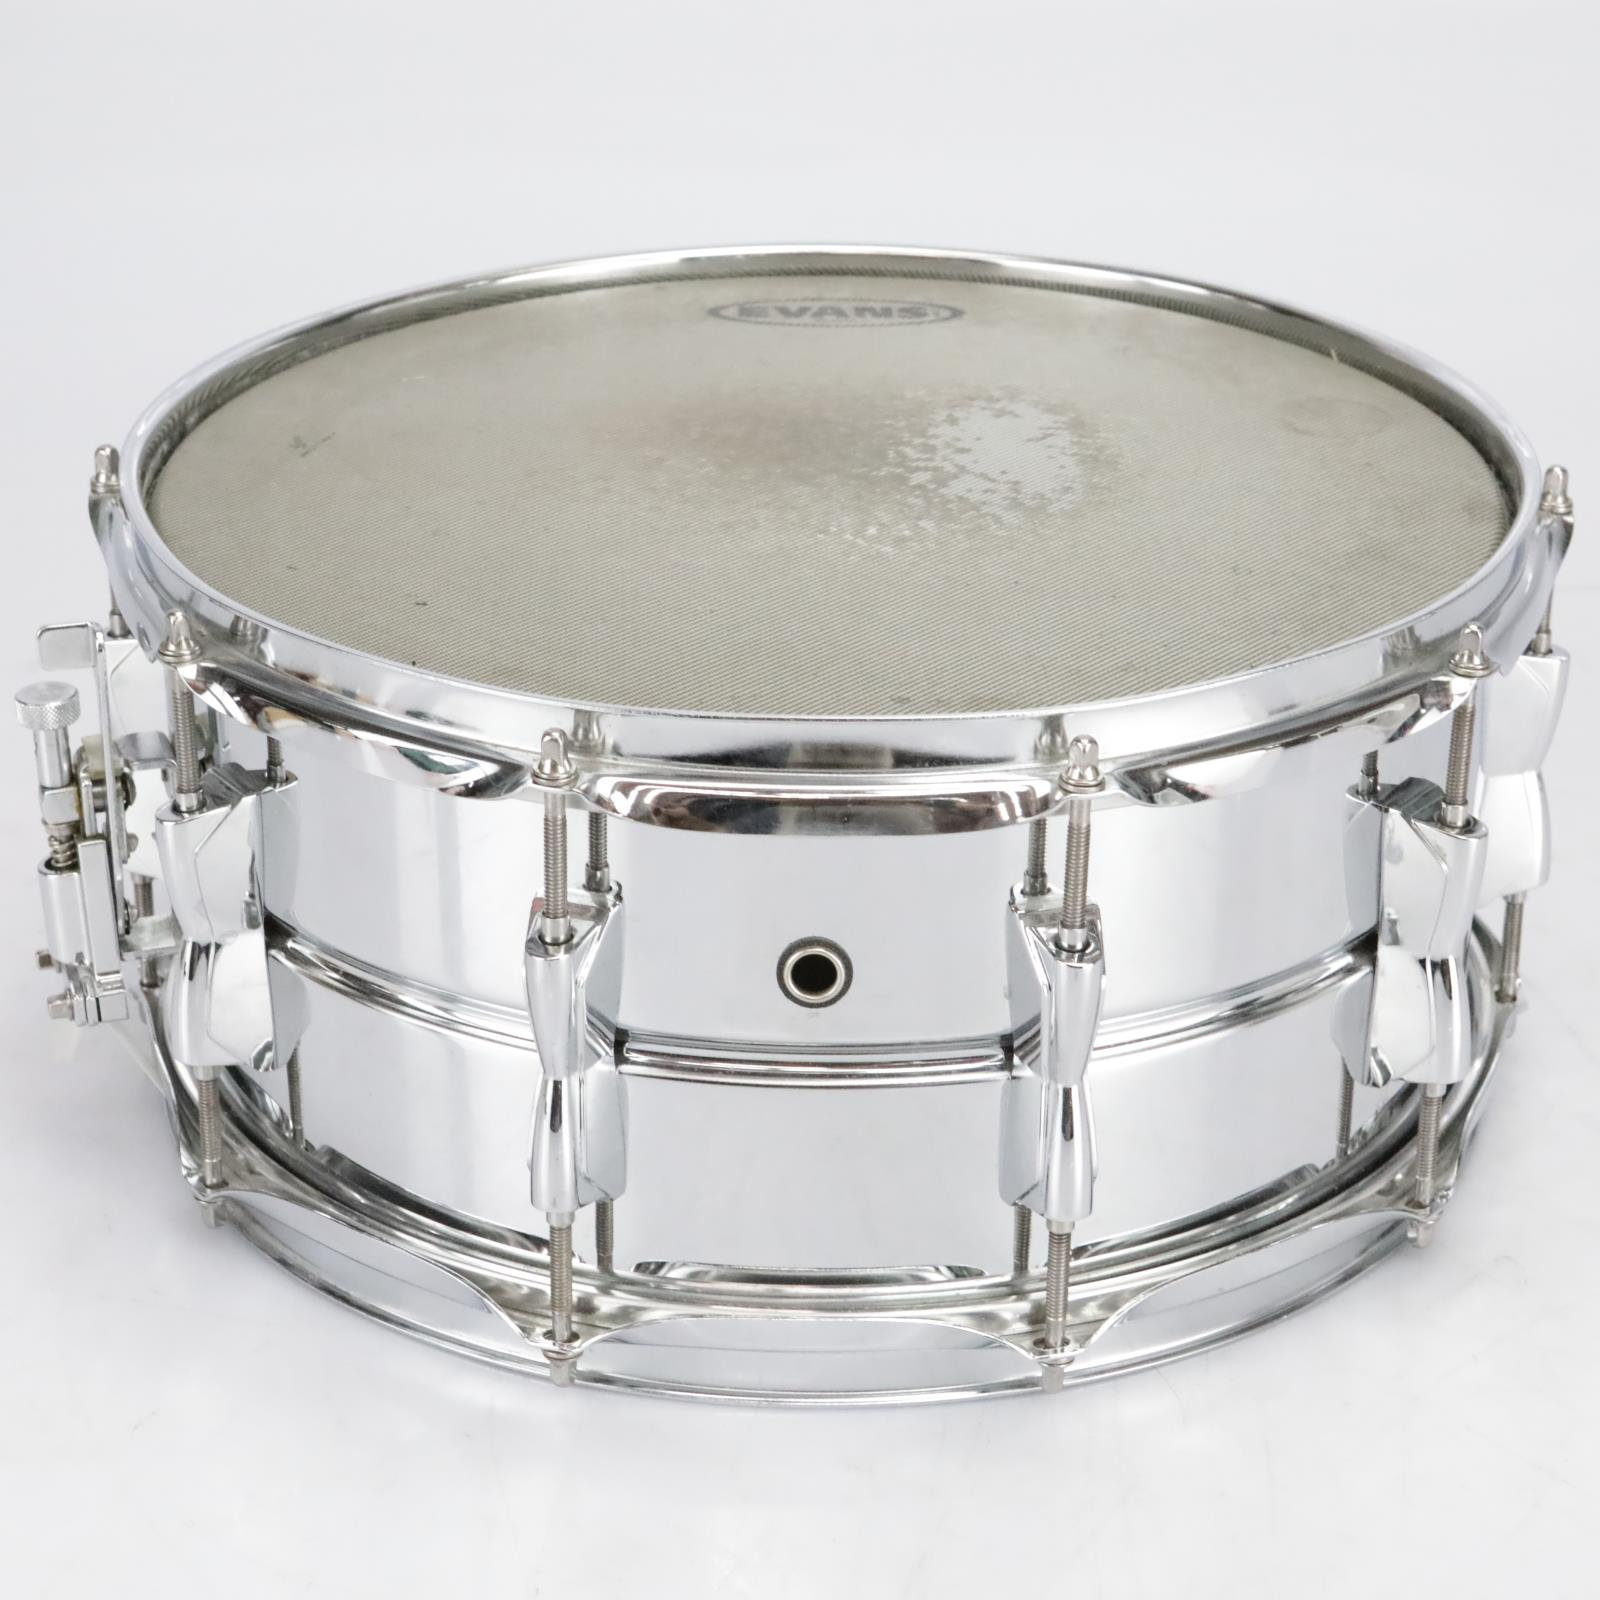 """Yamaha SD266A Snare Drum 14"""" x 6.5"""" Stainless Steel/Chrome #41050"""